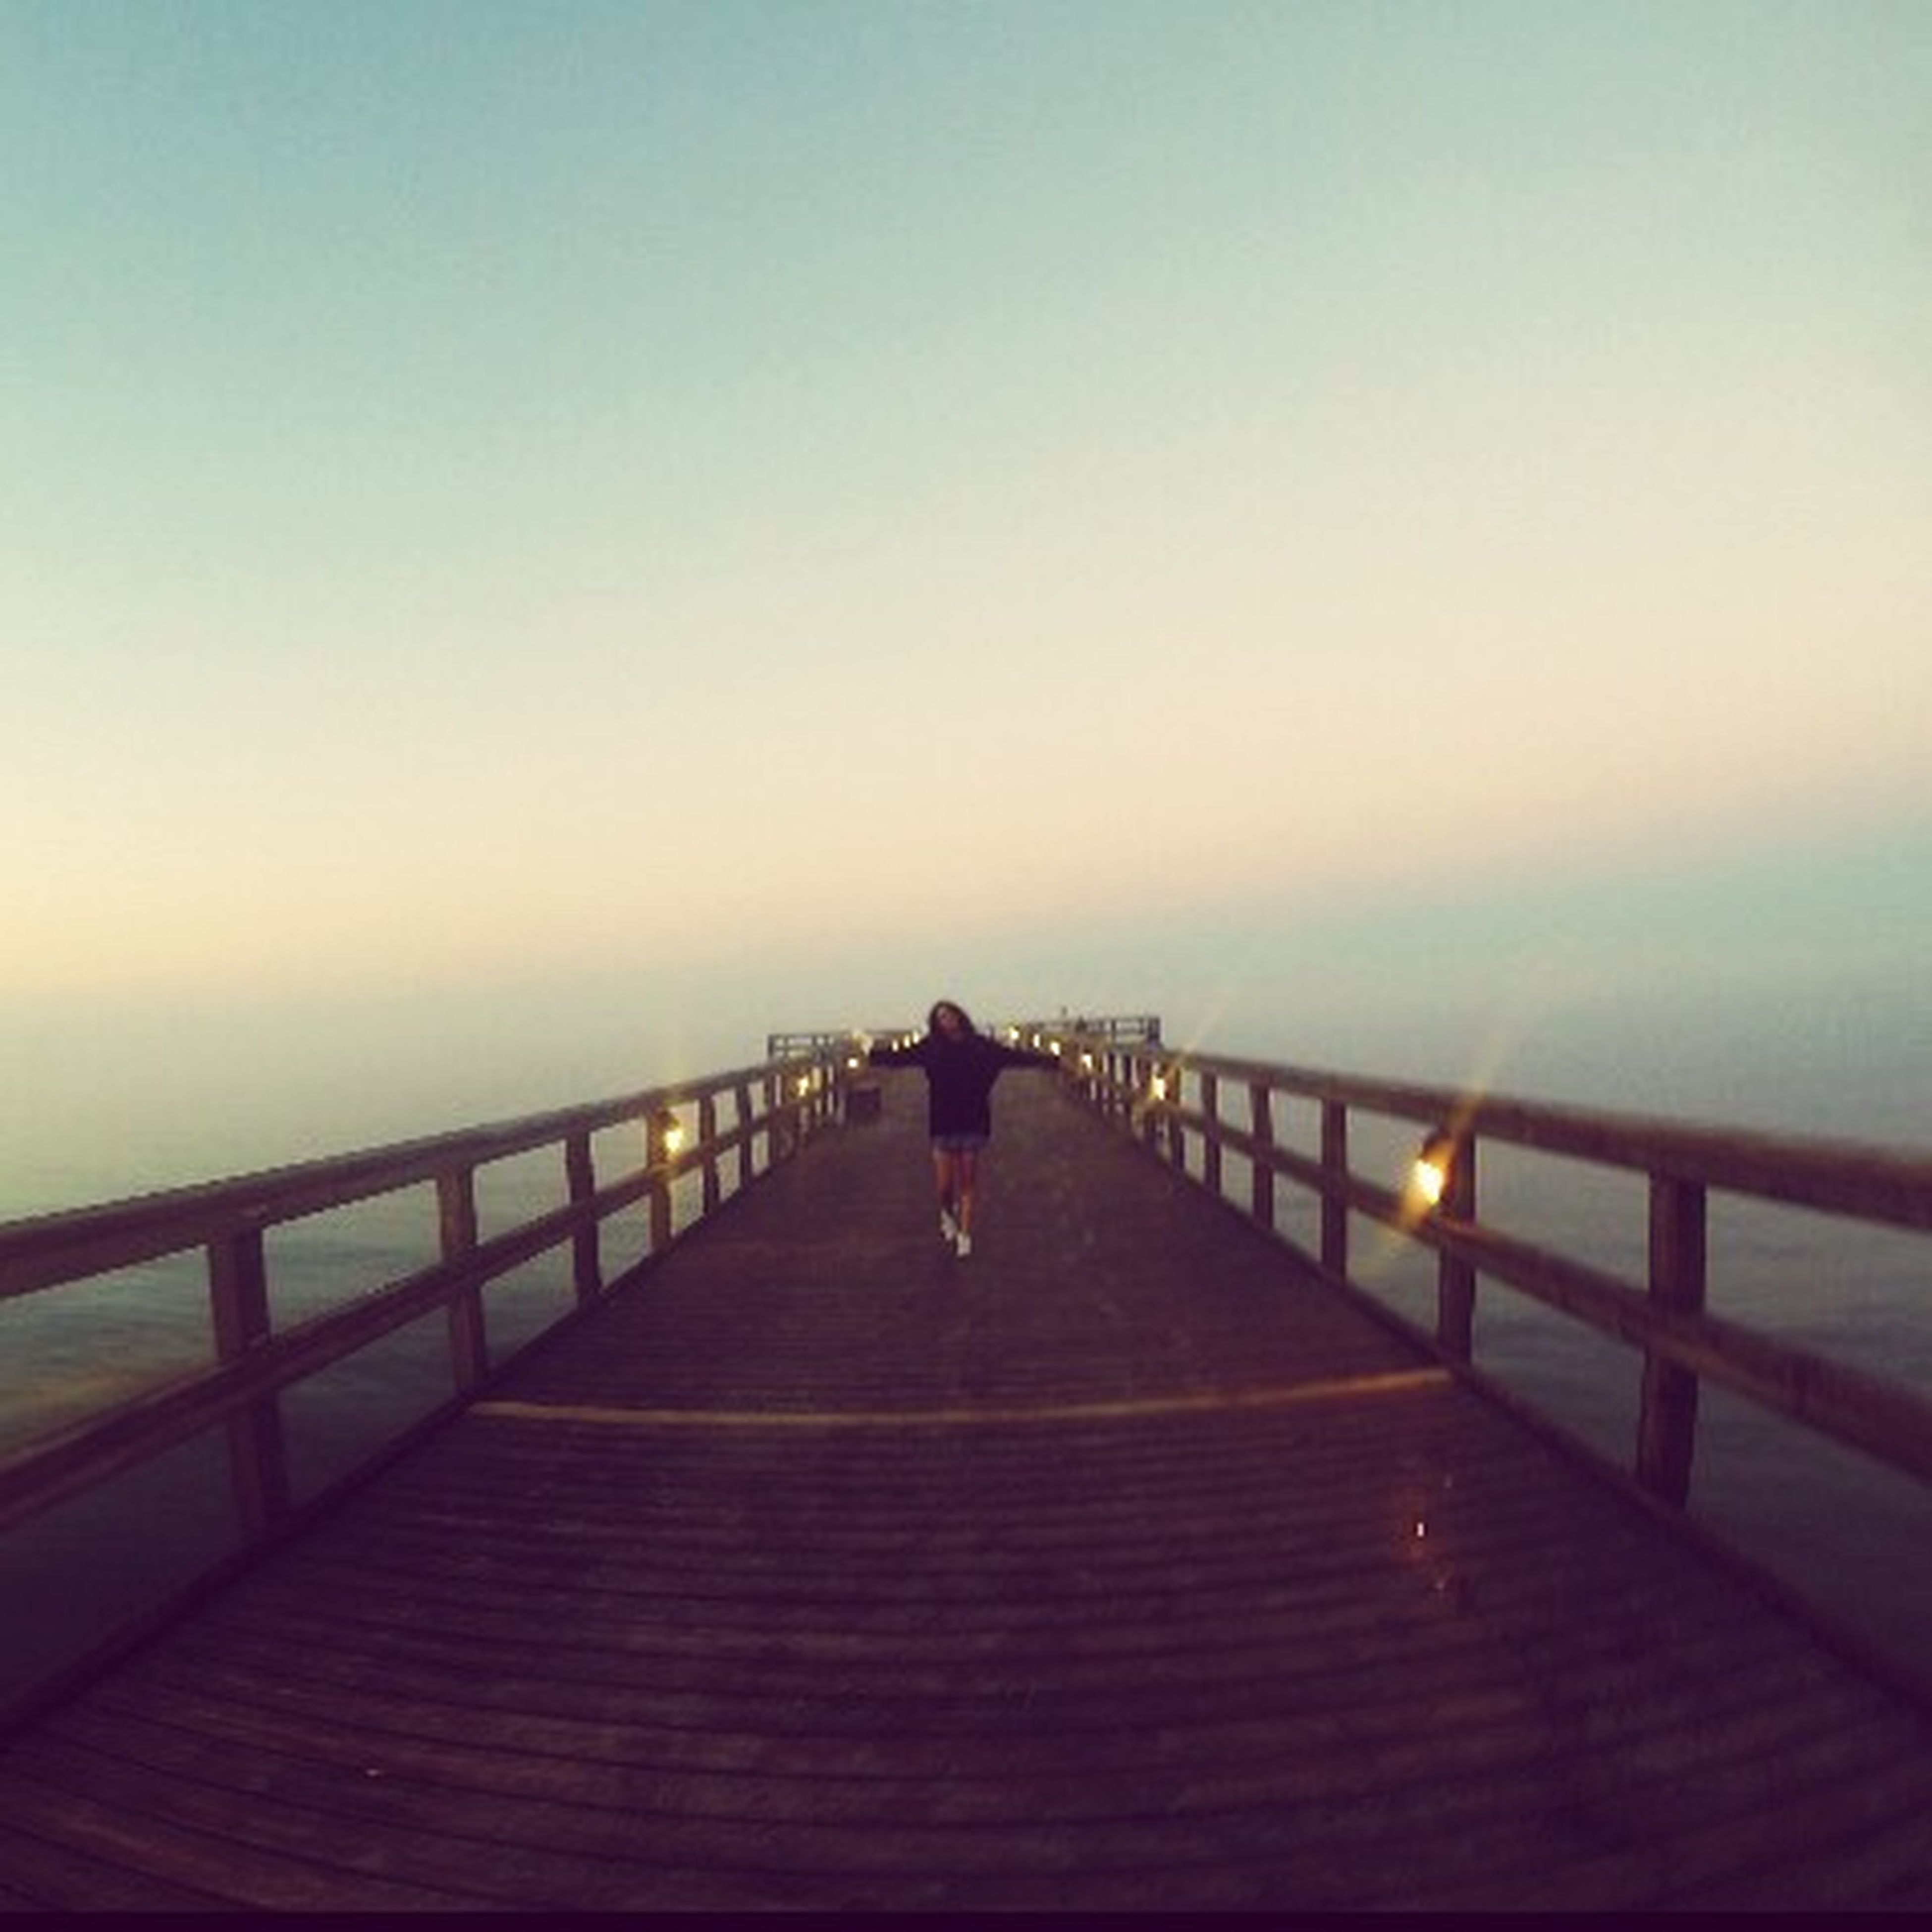 lifestyles, the way forward, full length, clear sky, sea, copy space, leisure activity, rear view, walking, railing, pier, men, water, sky, horizon over water, person, tranquility, boardwalk